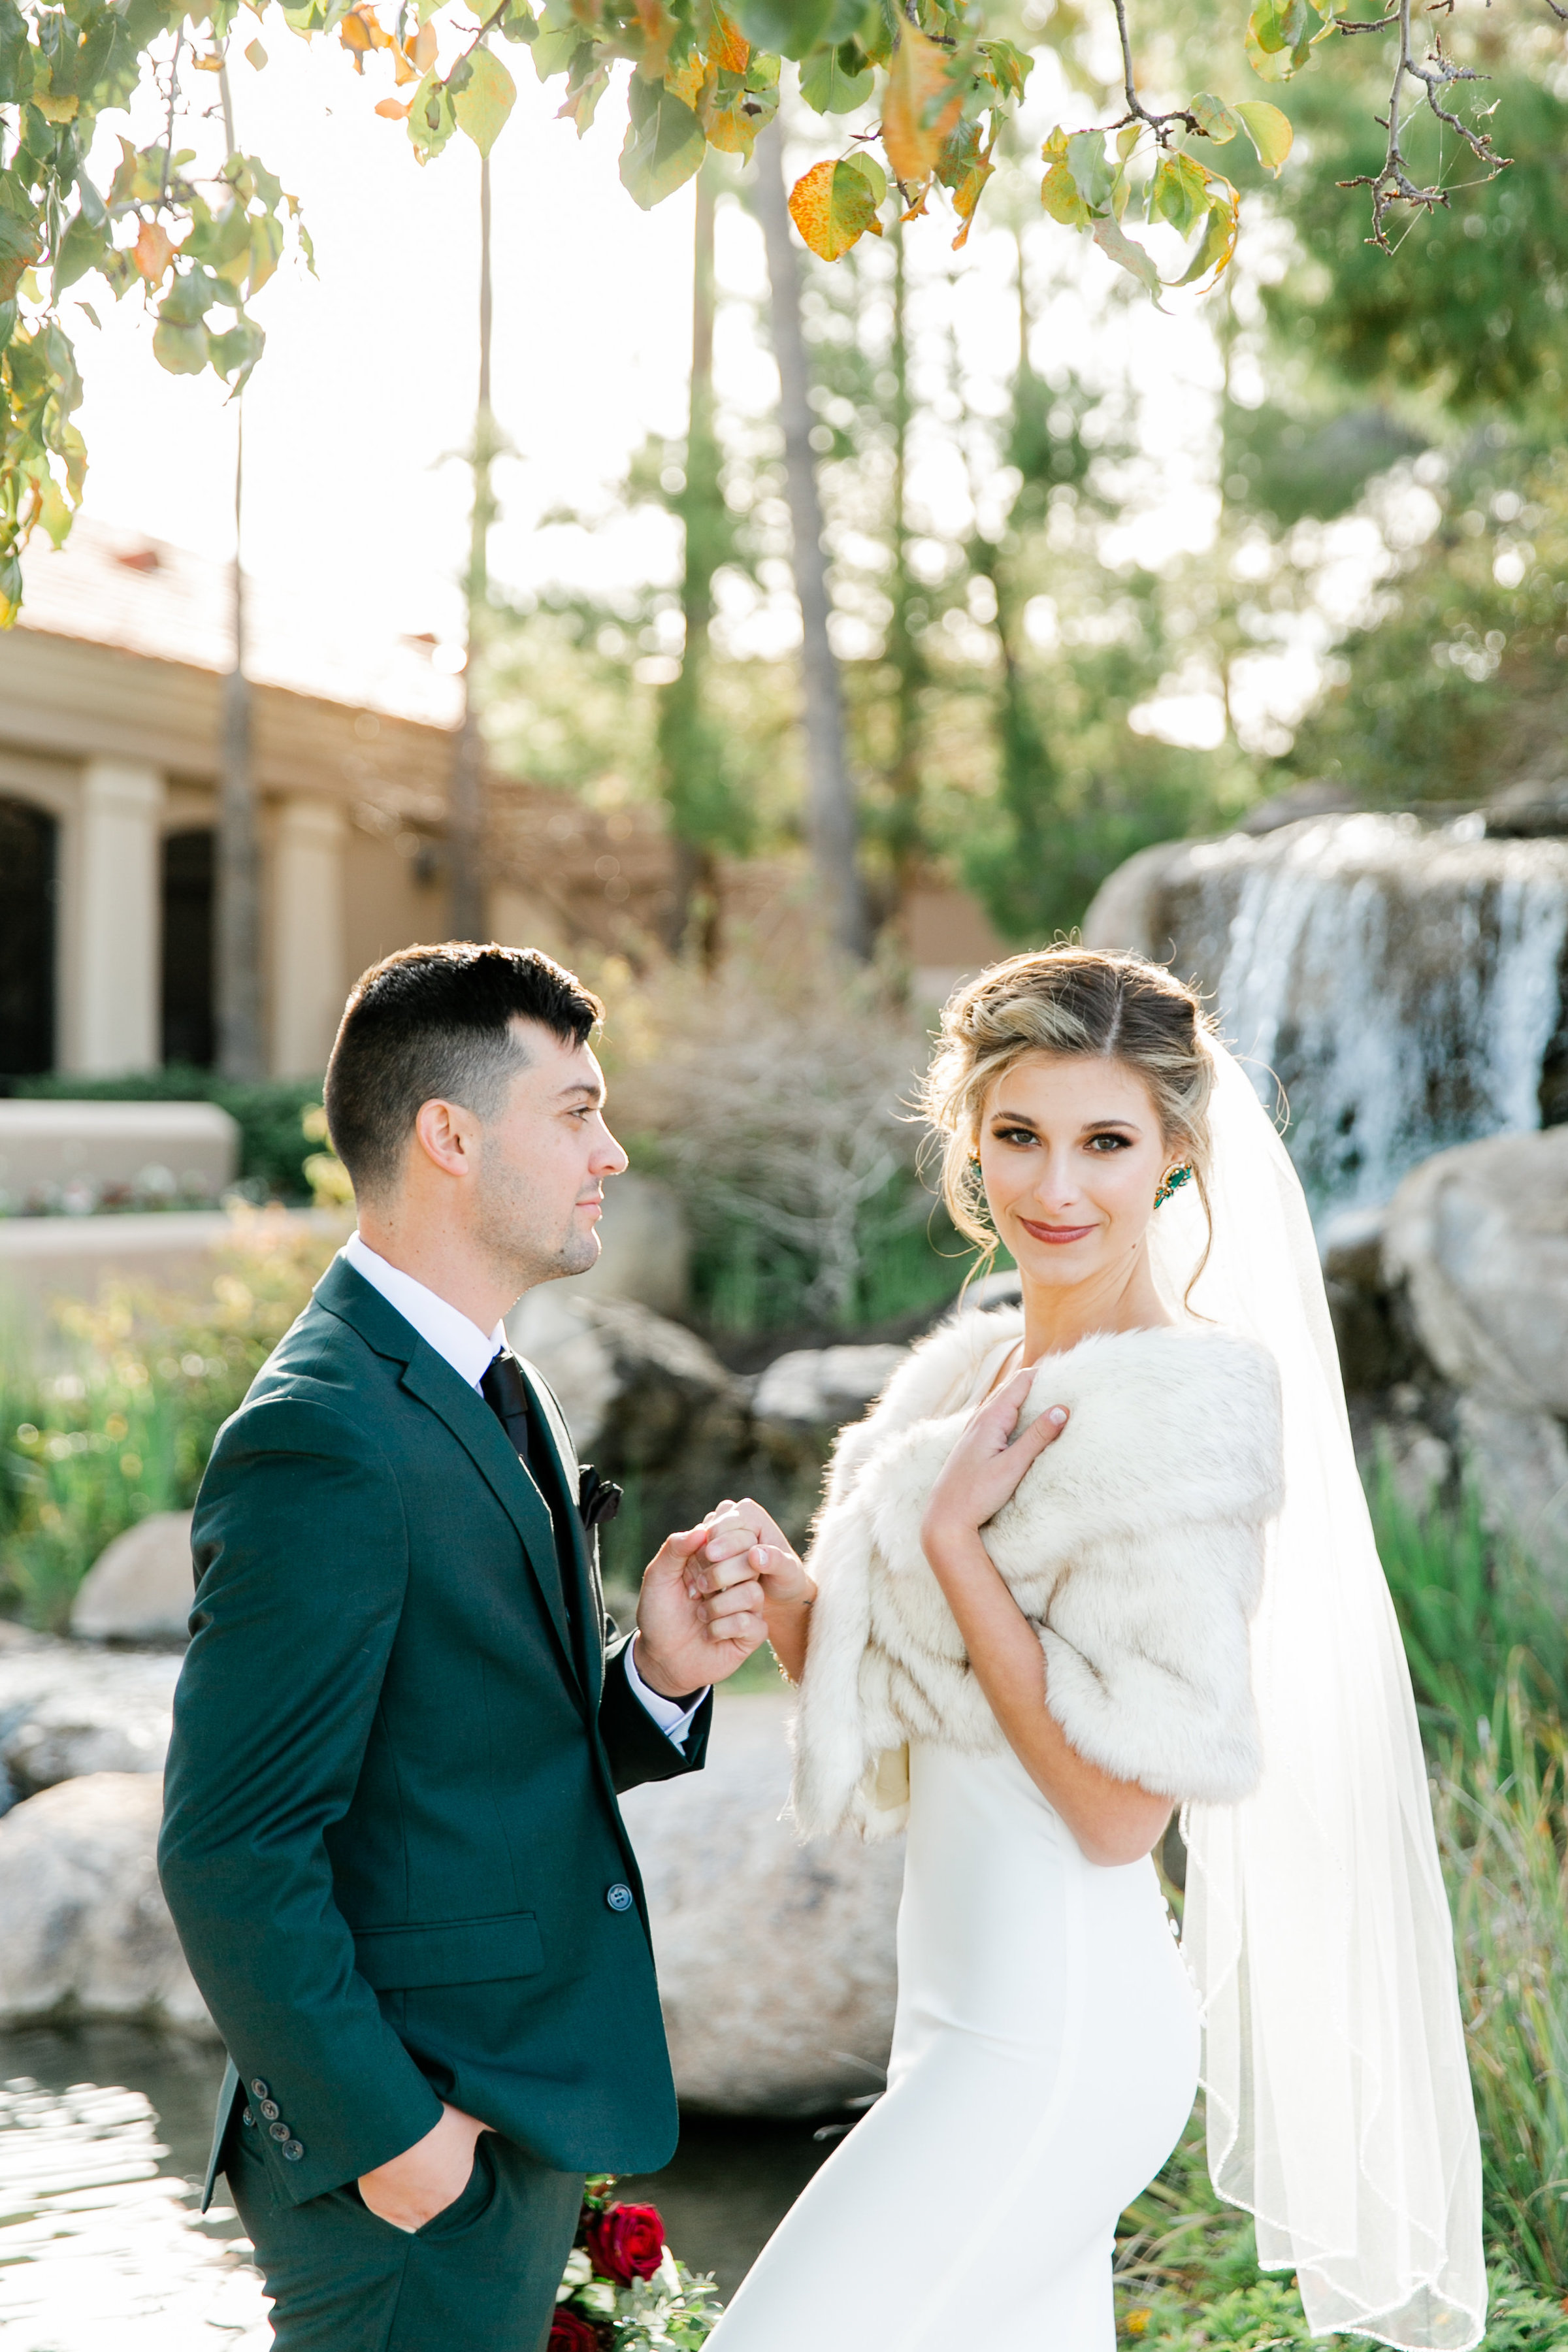 Karlie Colleen Photography - Gilbert Arizona Wedding - Val Vista Lakes - Brynne & Josh-483